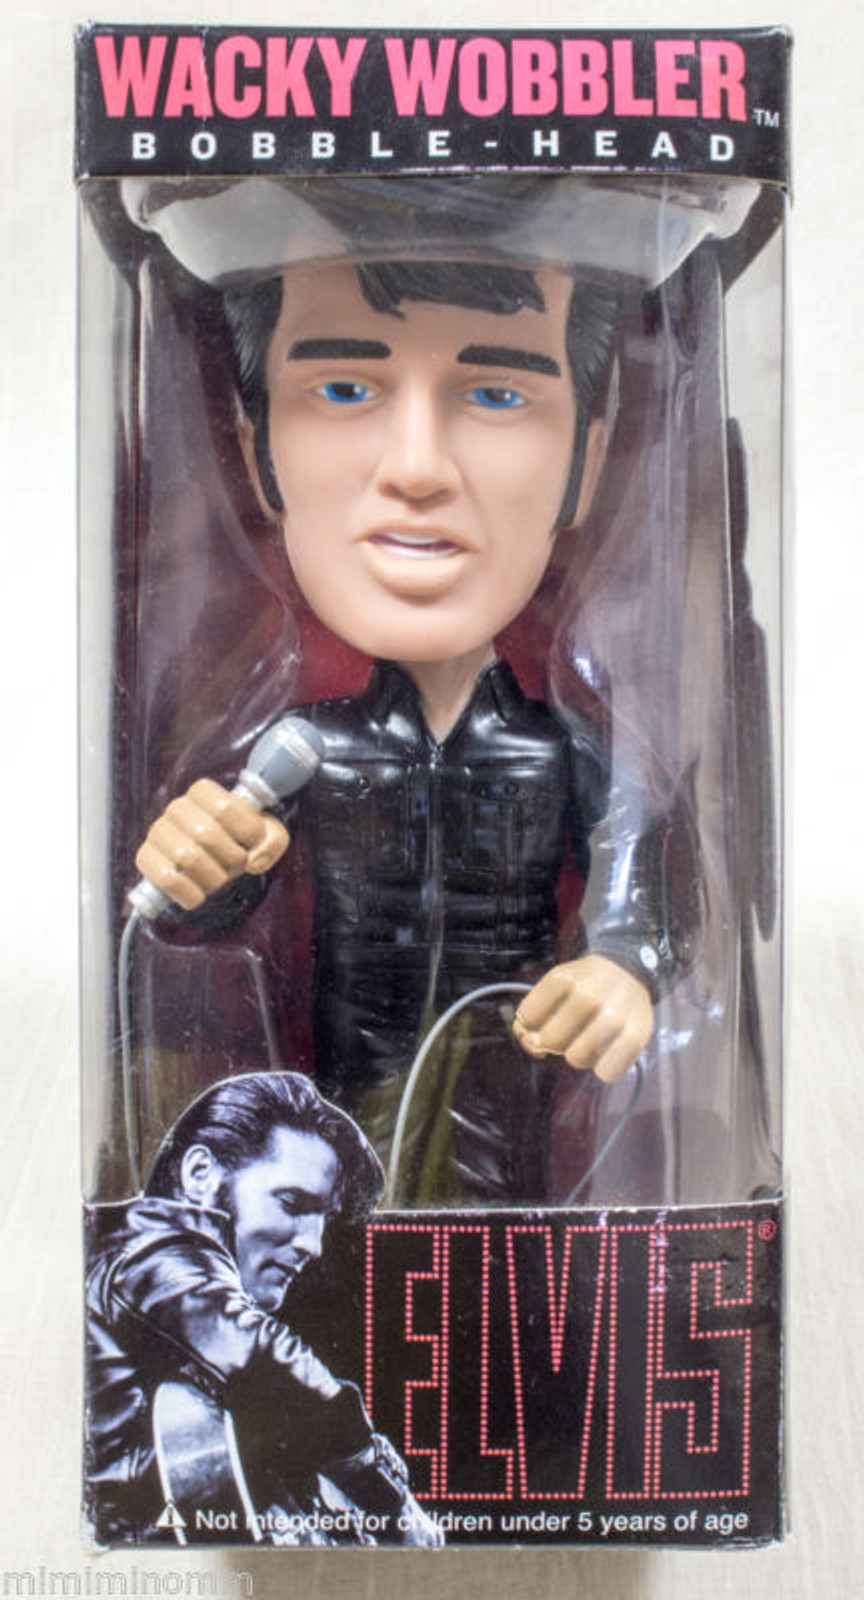 Elvis Presley 68 Special Wacky Wobbler Bobble Head Figure Toy Doll Funko Rock